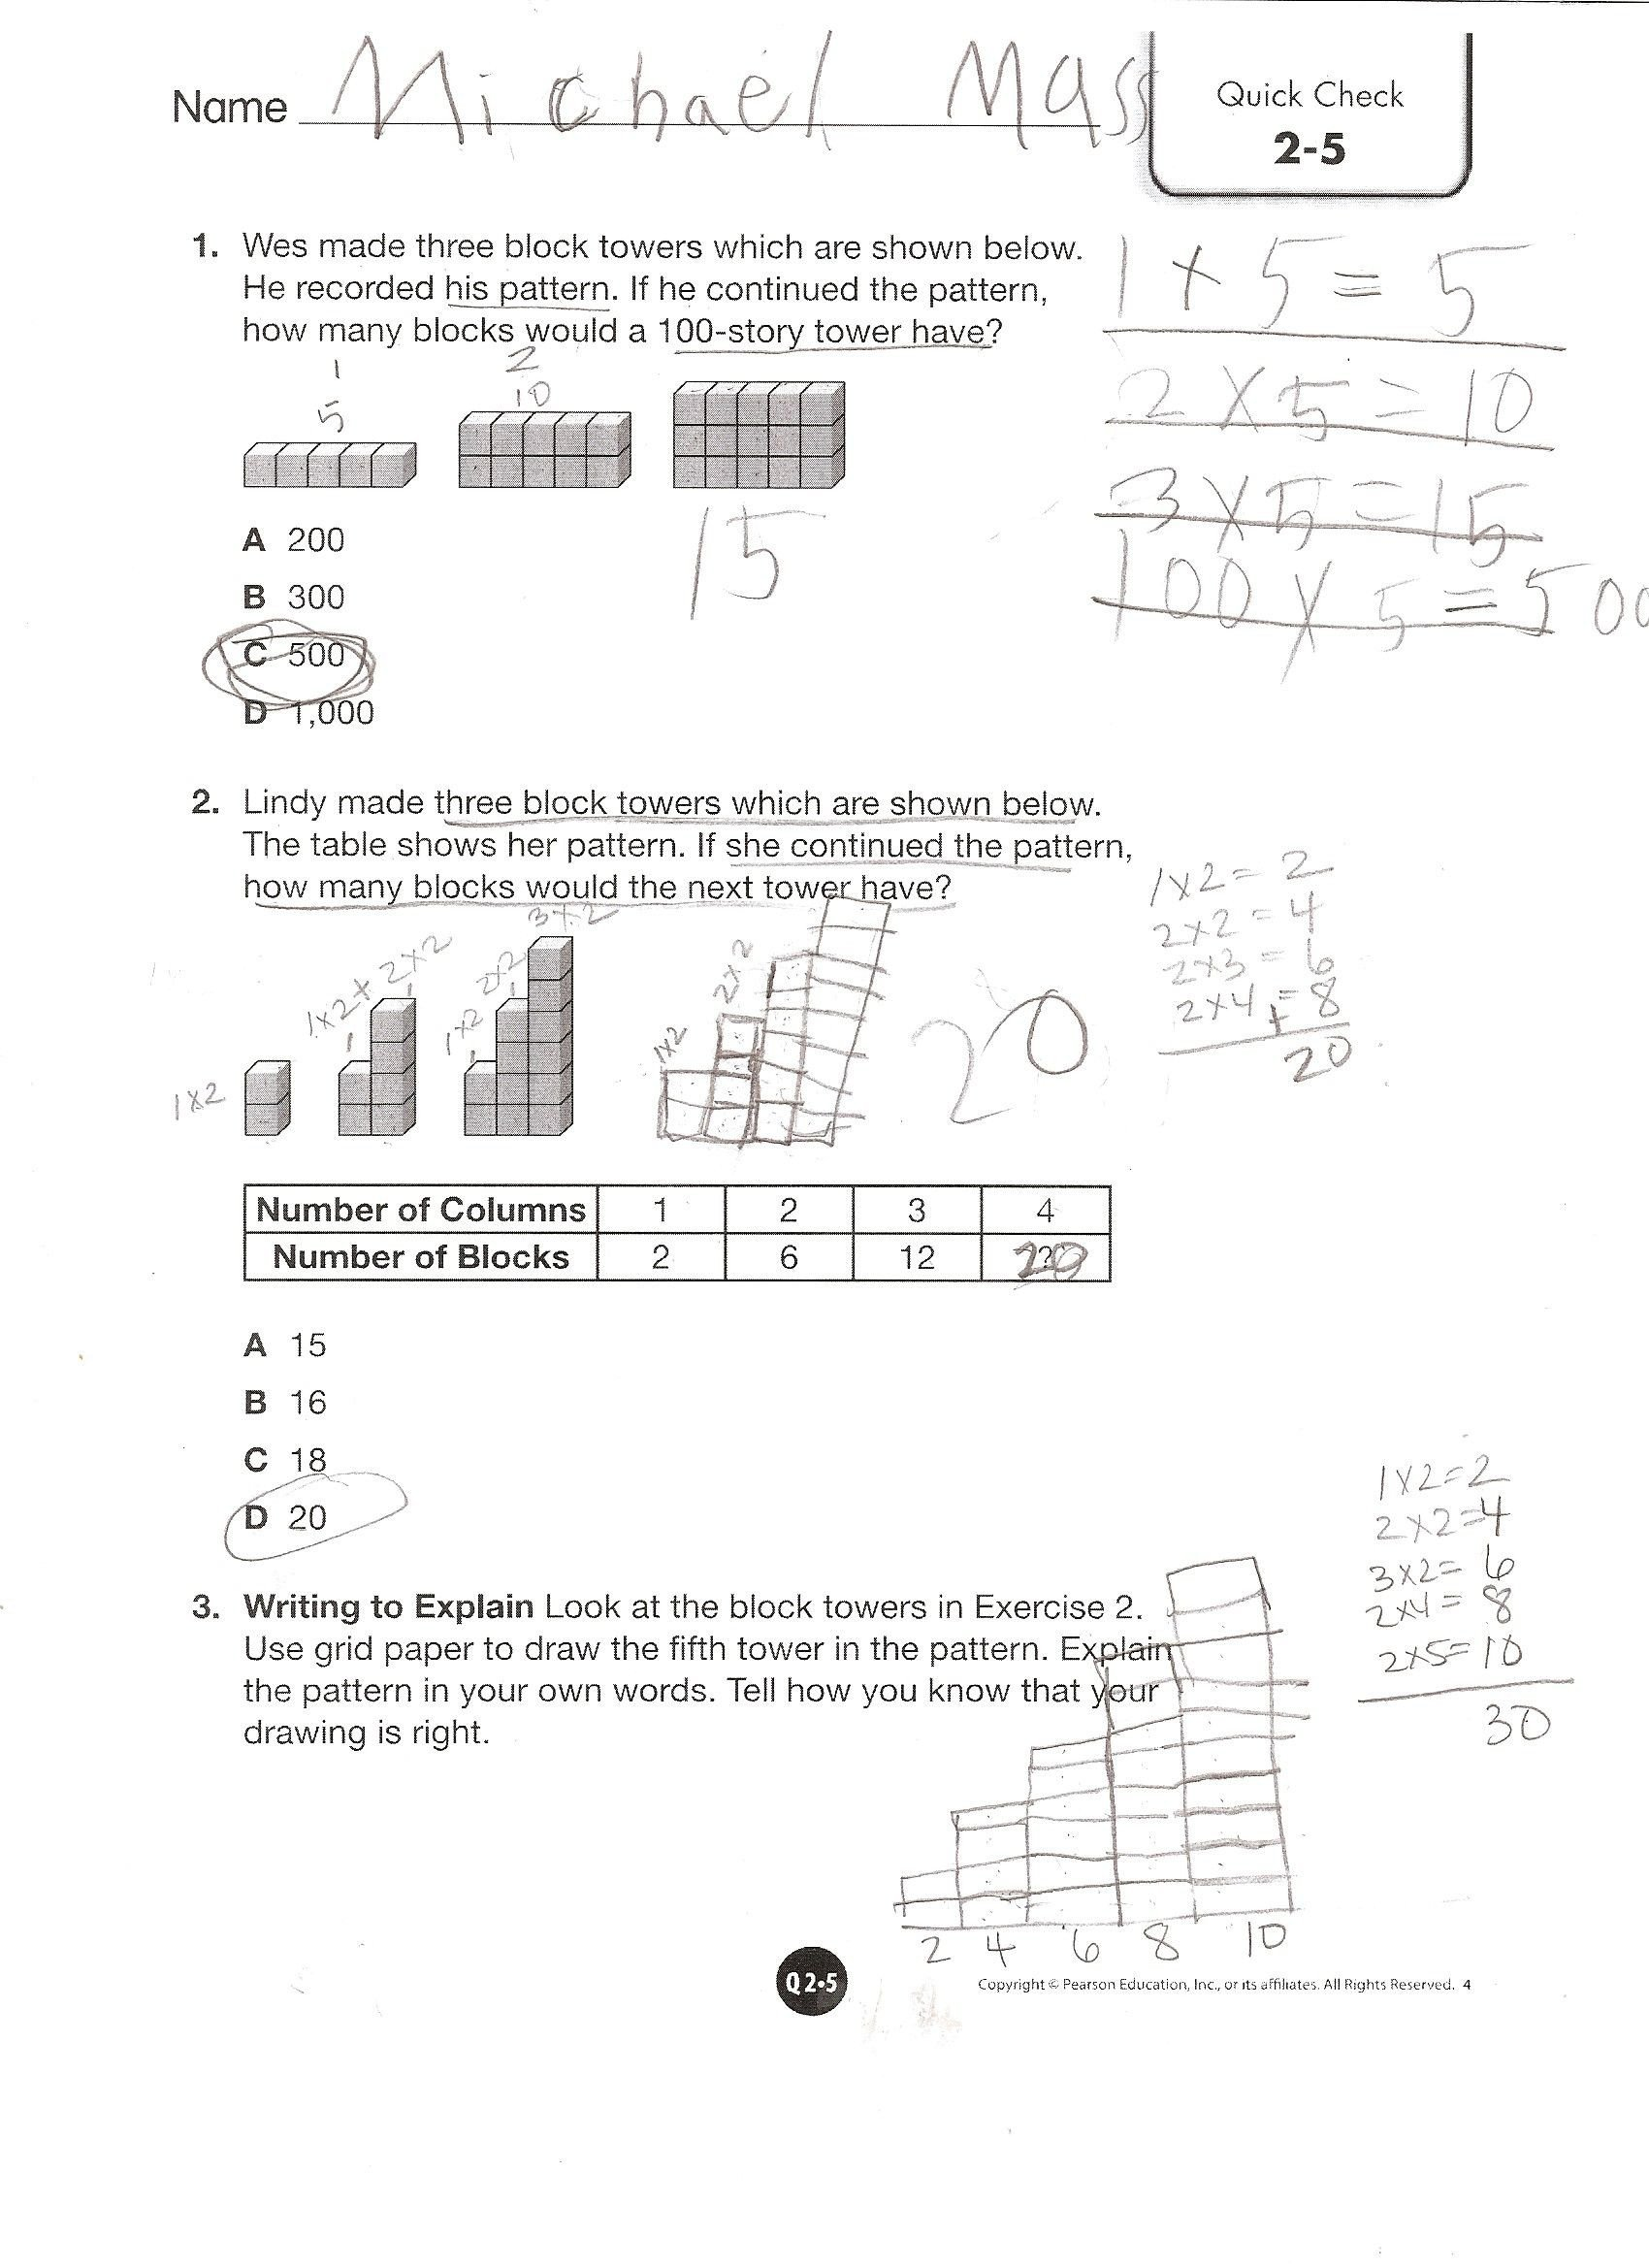 Envision Math Kindergarten Worksheets Envision Math Grade 4 topic 2 5 Quick Check